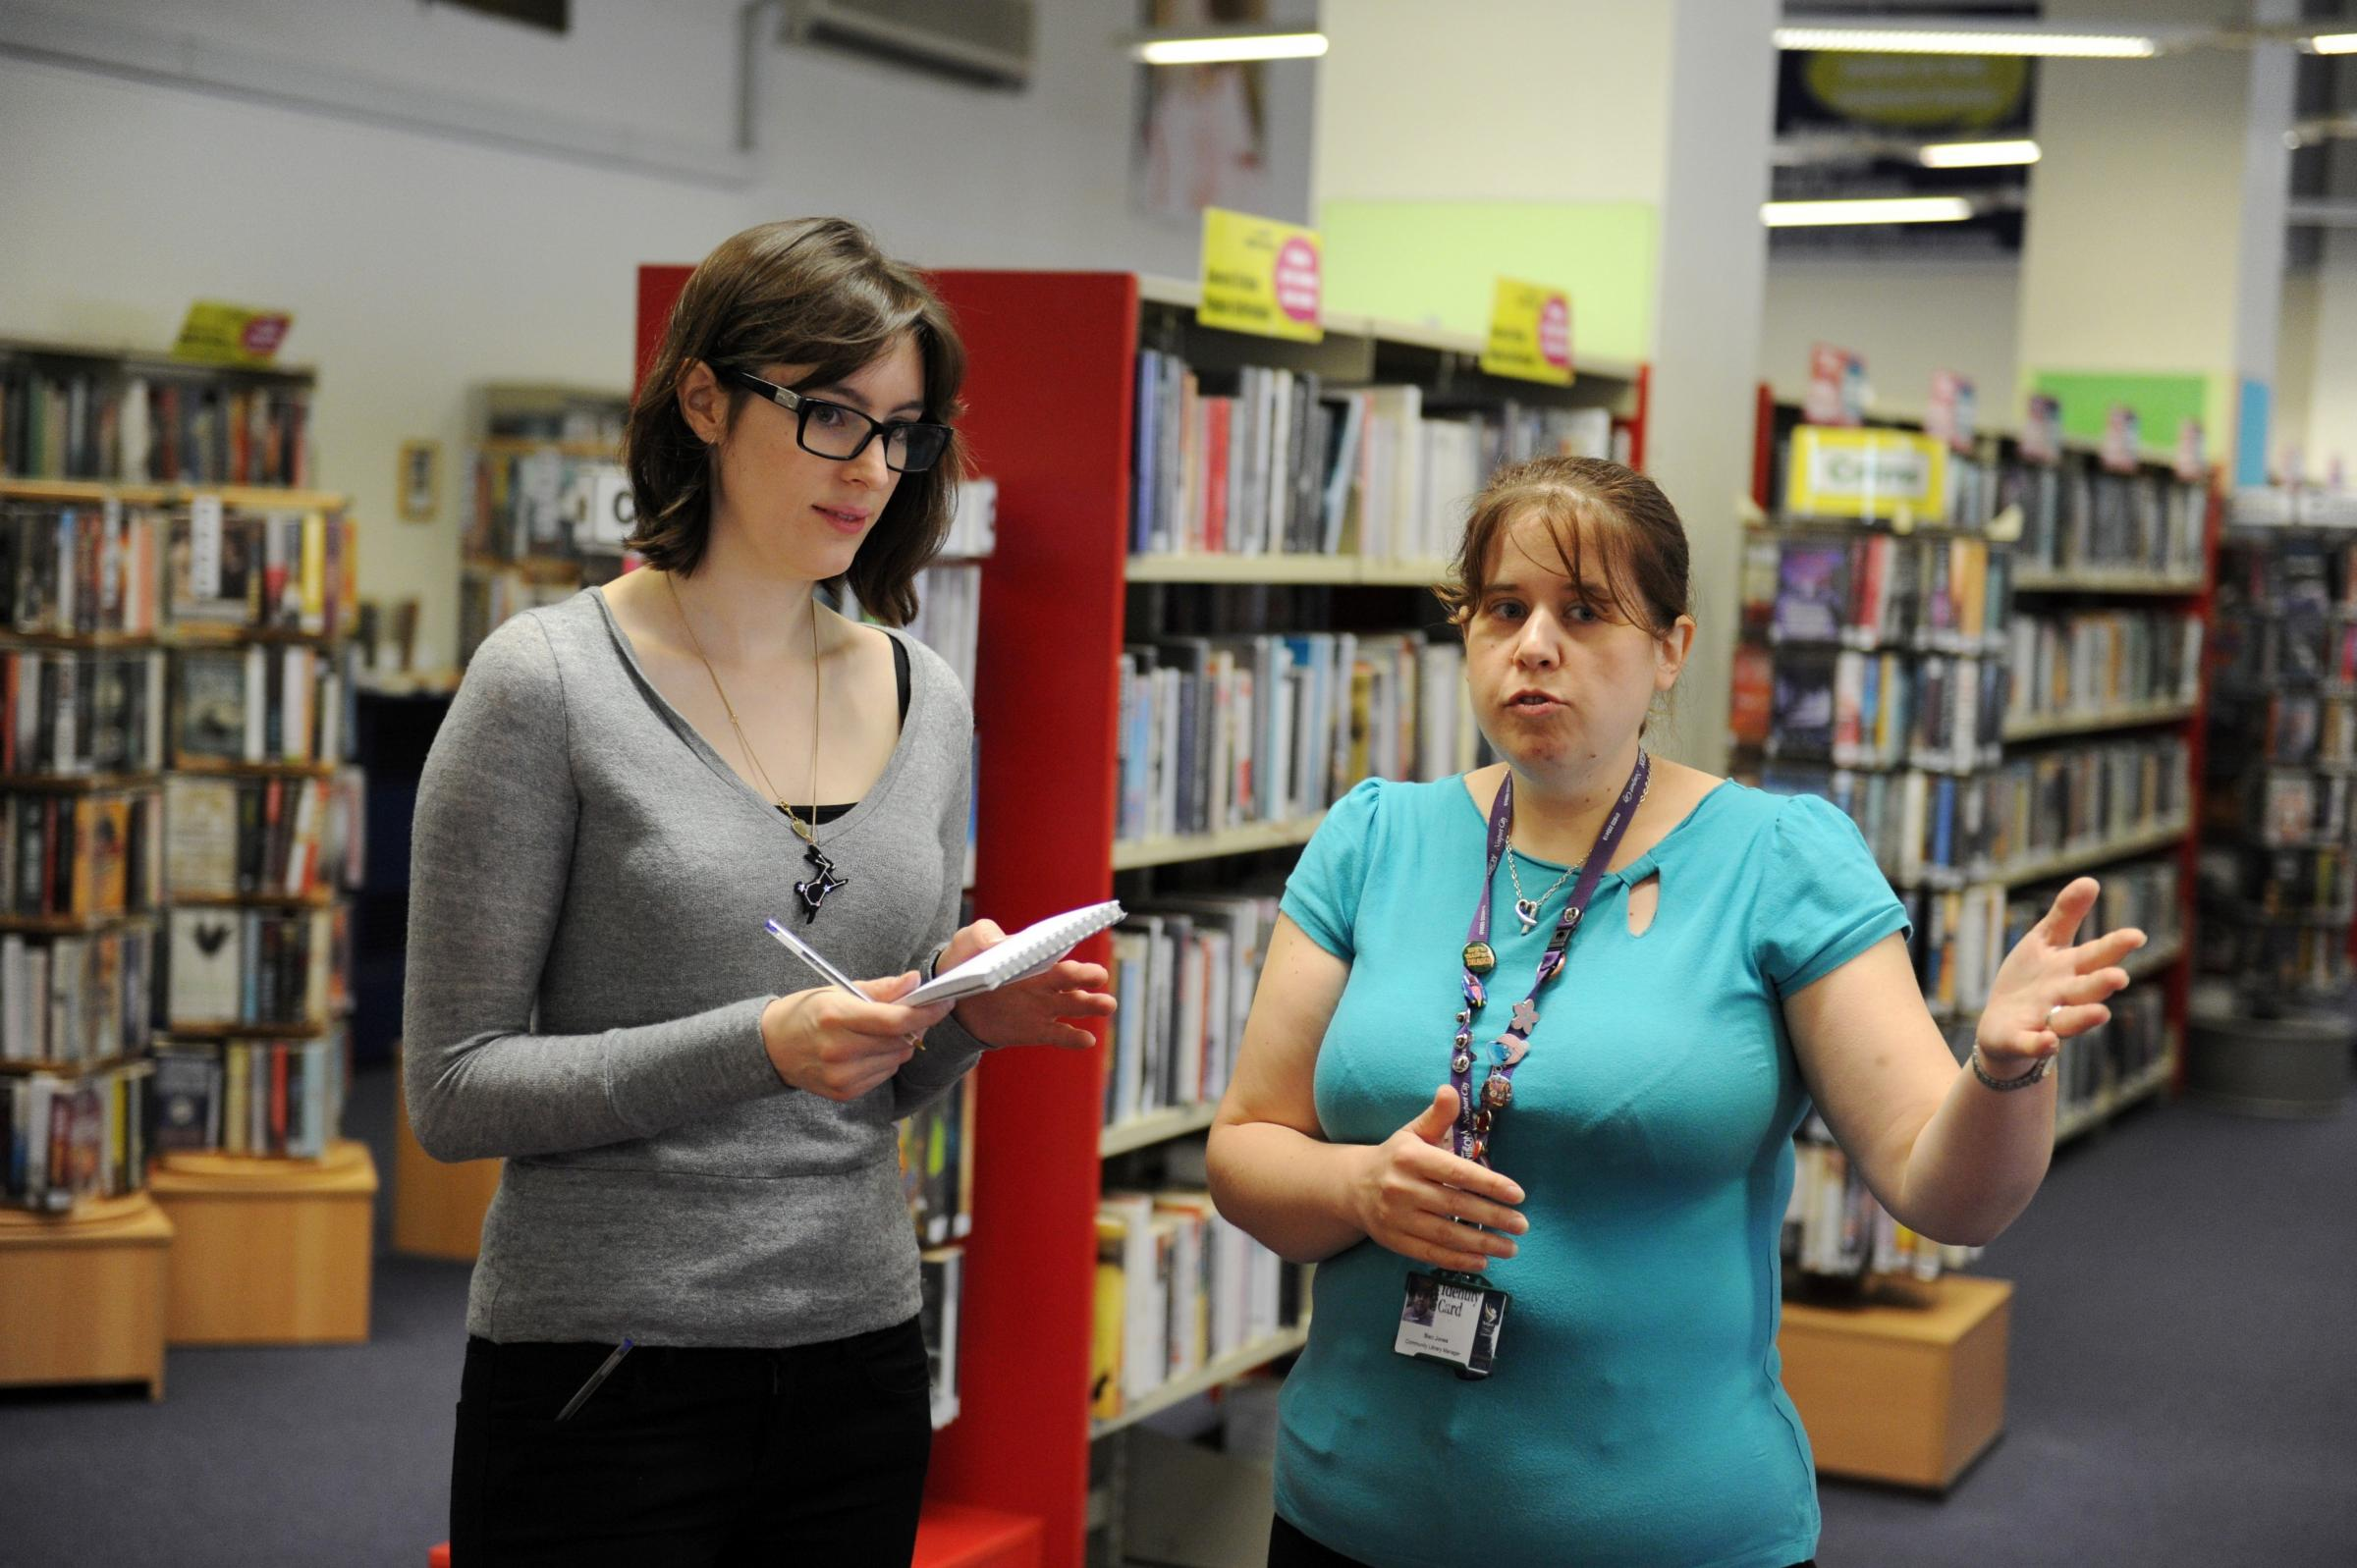 Library Work Experience South Wales Argus